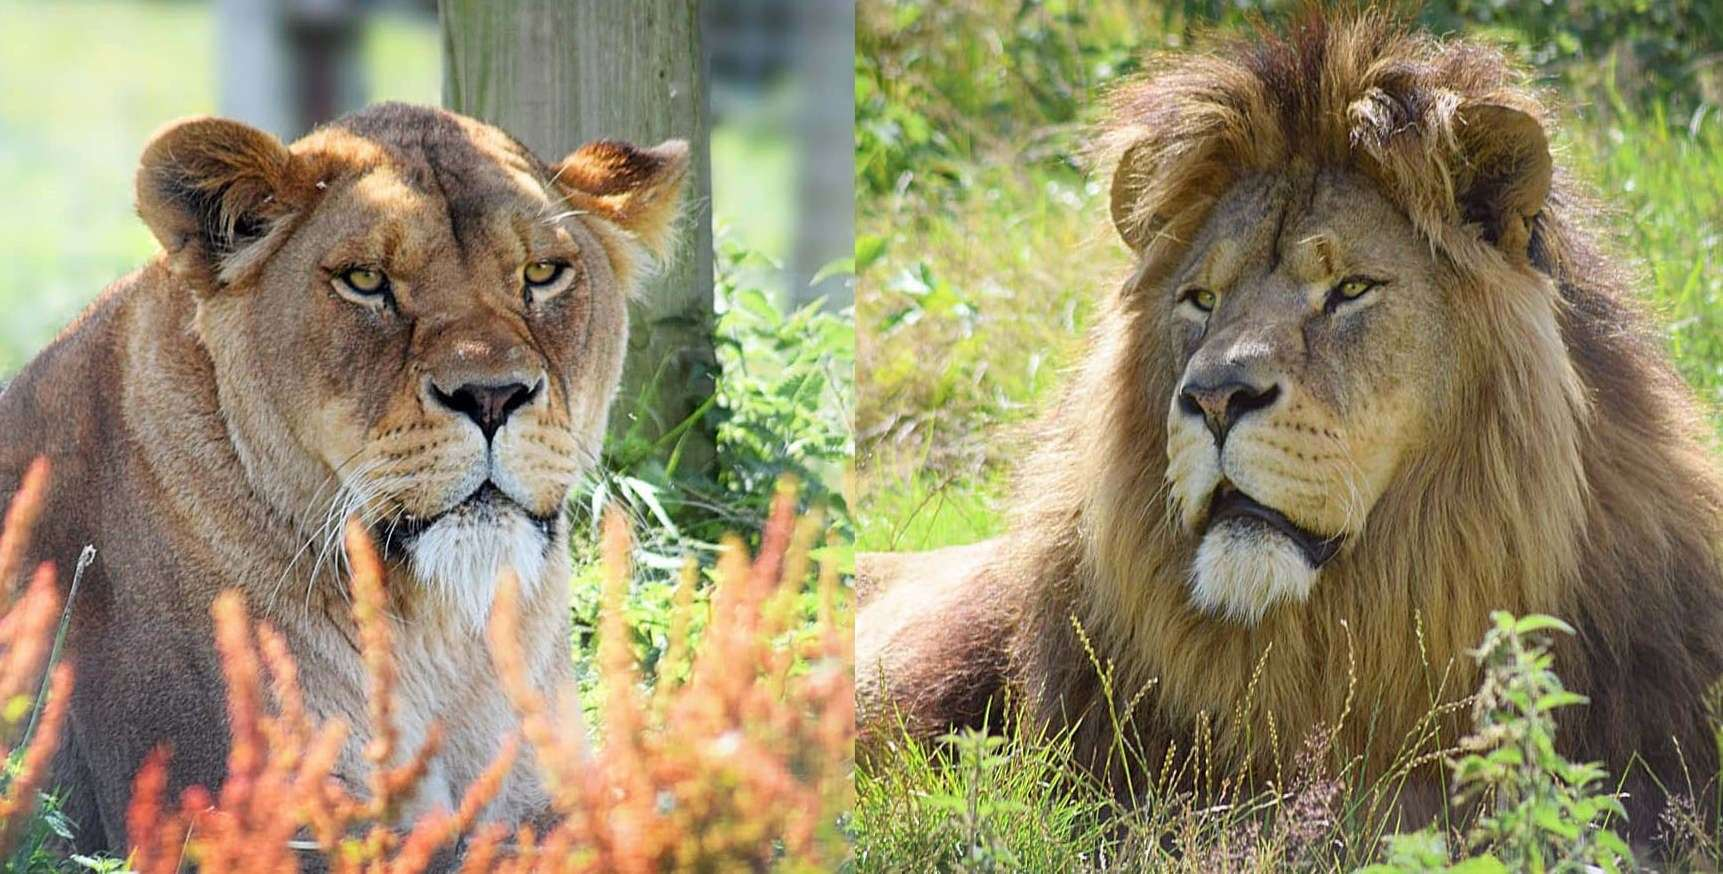 Port Lympne is home to hundreds of animals, including the lions Wilma and Zulu Picture: Port Lympne